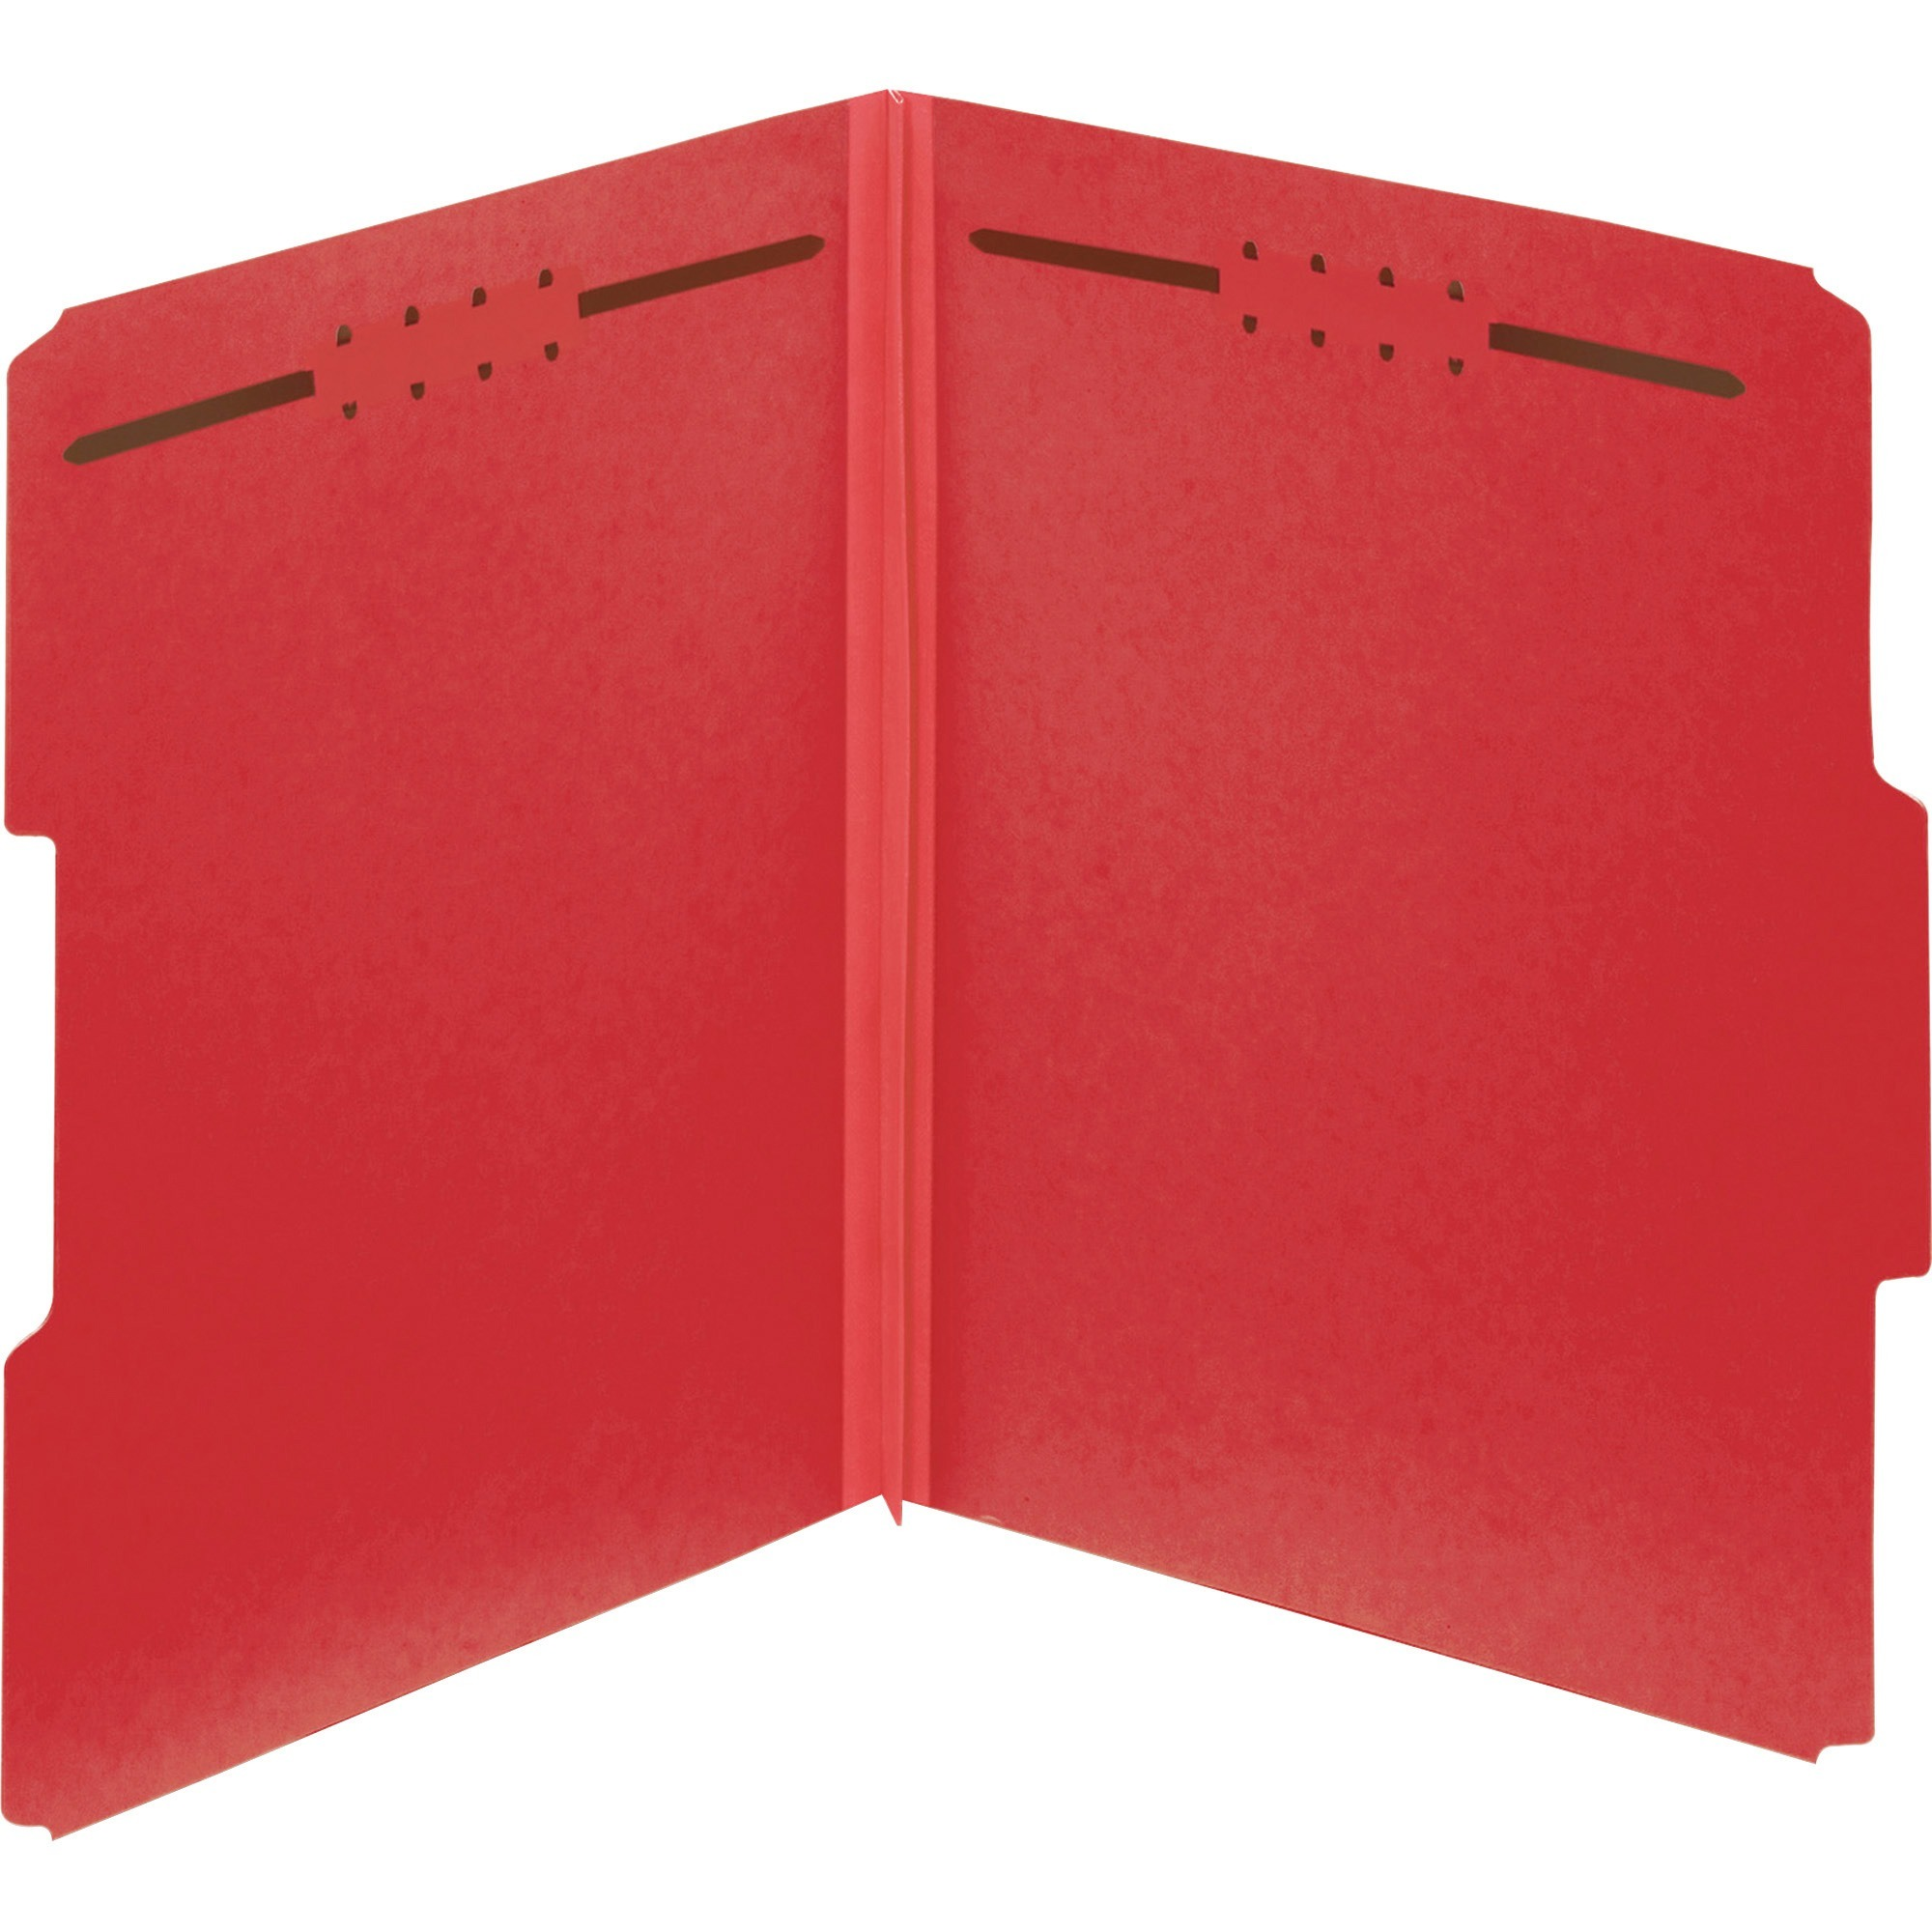 Pendaflex, PFX15936GW, Colored Pressboard Fastener Folders, 25 / Box, Bright Red